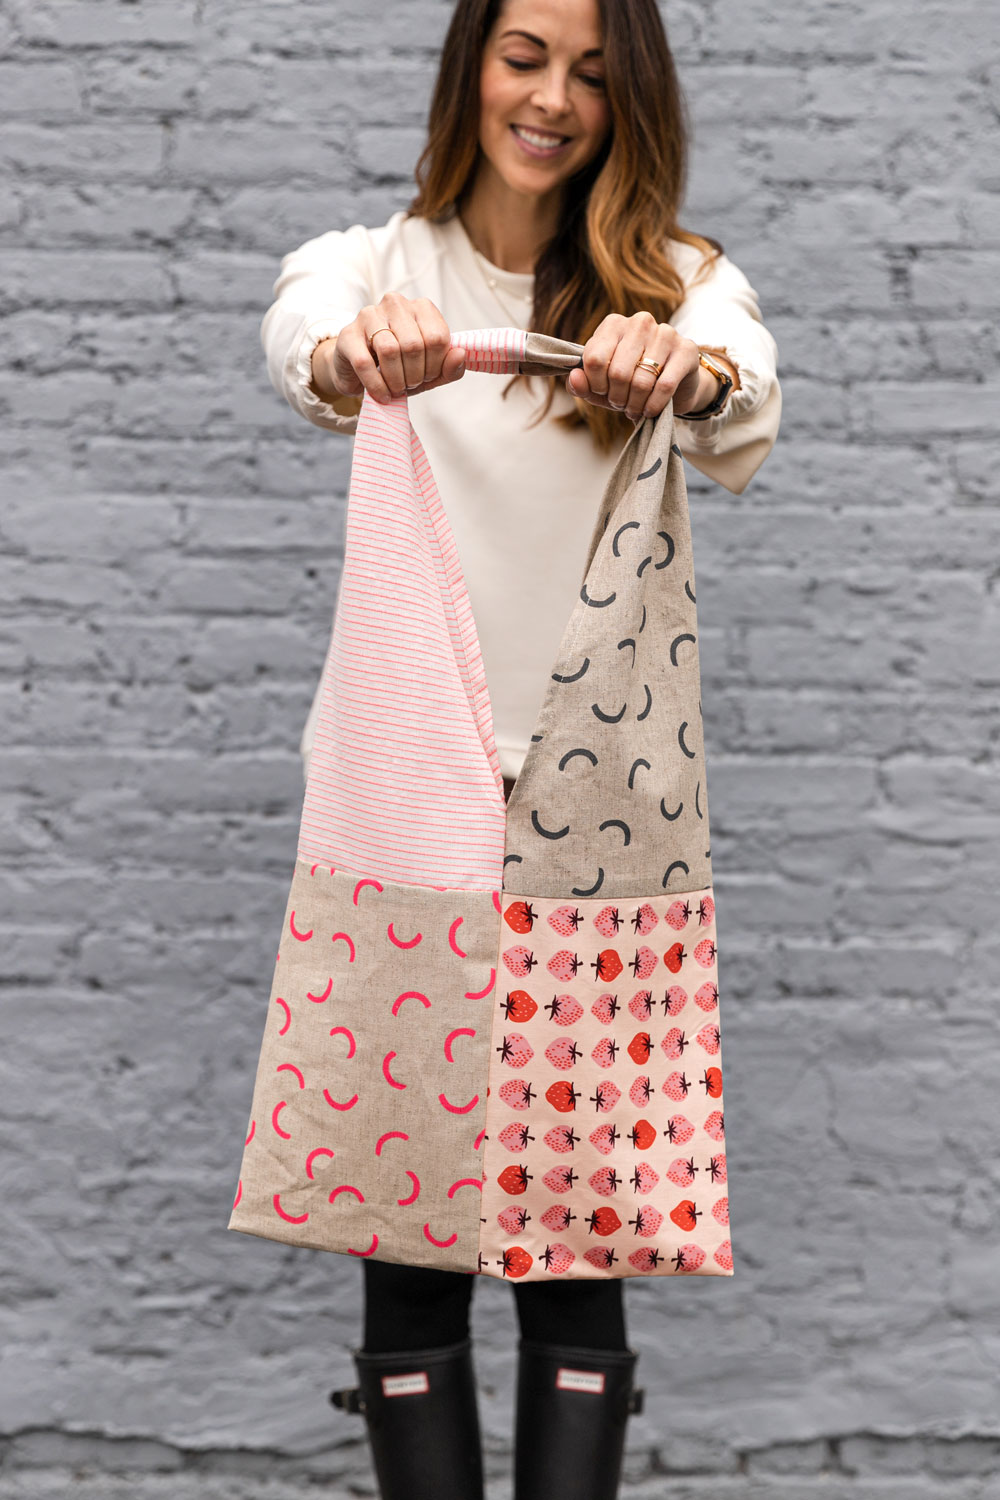 In this free reusable market bag tutorial you only need basic sewing skills and 4 fat quarters of fabric. This sewing DIY is great for kids too! suzyquilts.com #freebagpattern #beginnersewing #patchworkbag